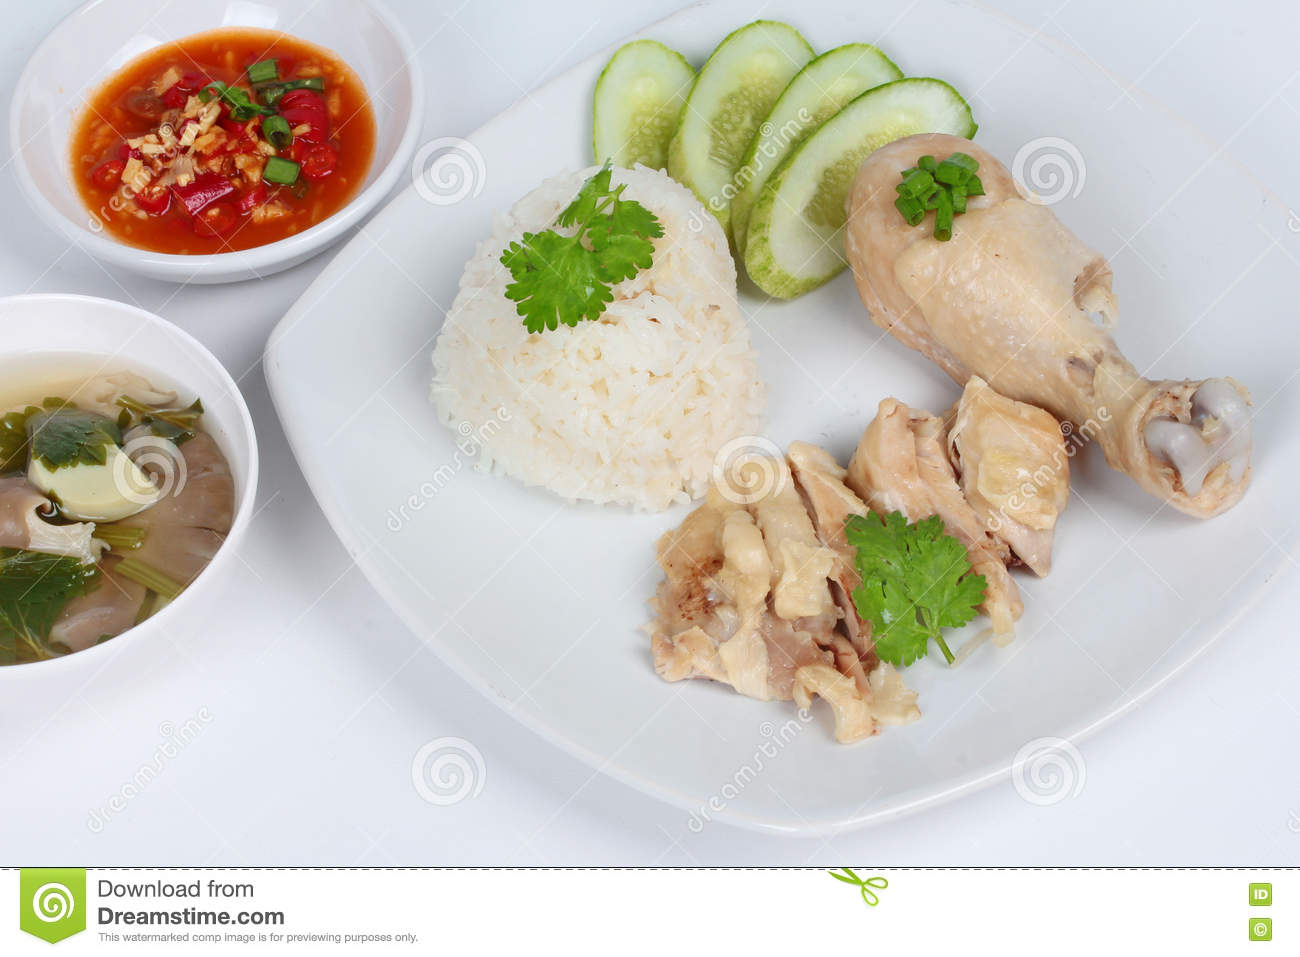 Streamed Oily Rice And Streamed Chicken As Hainanese Chicken Rice S With Spicy Soy Bean Sauce On White Background